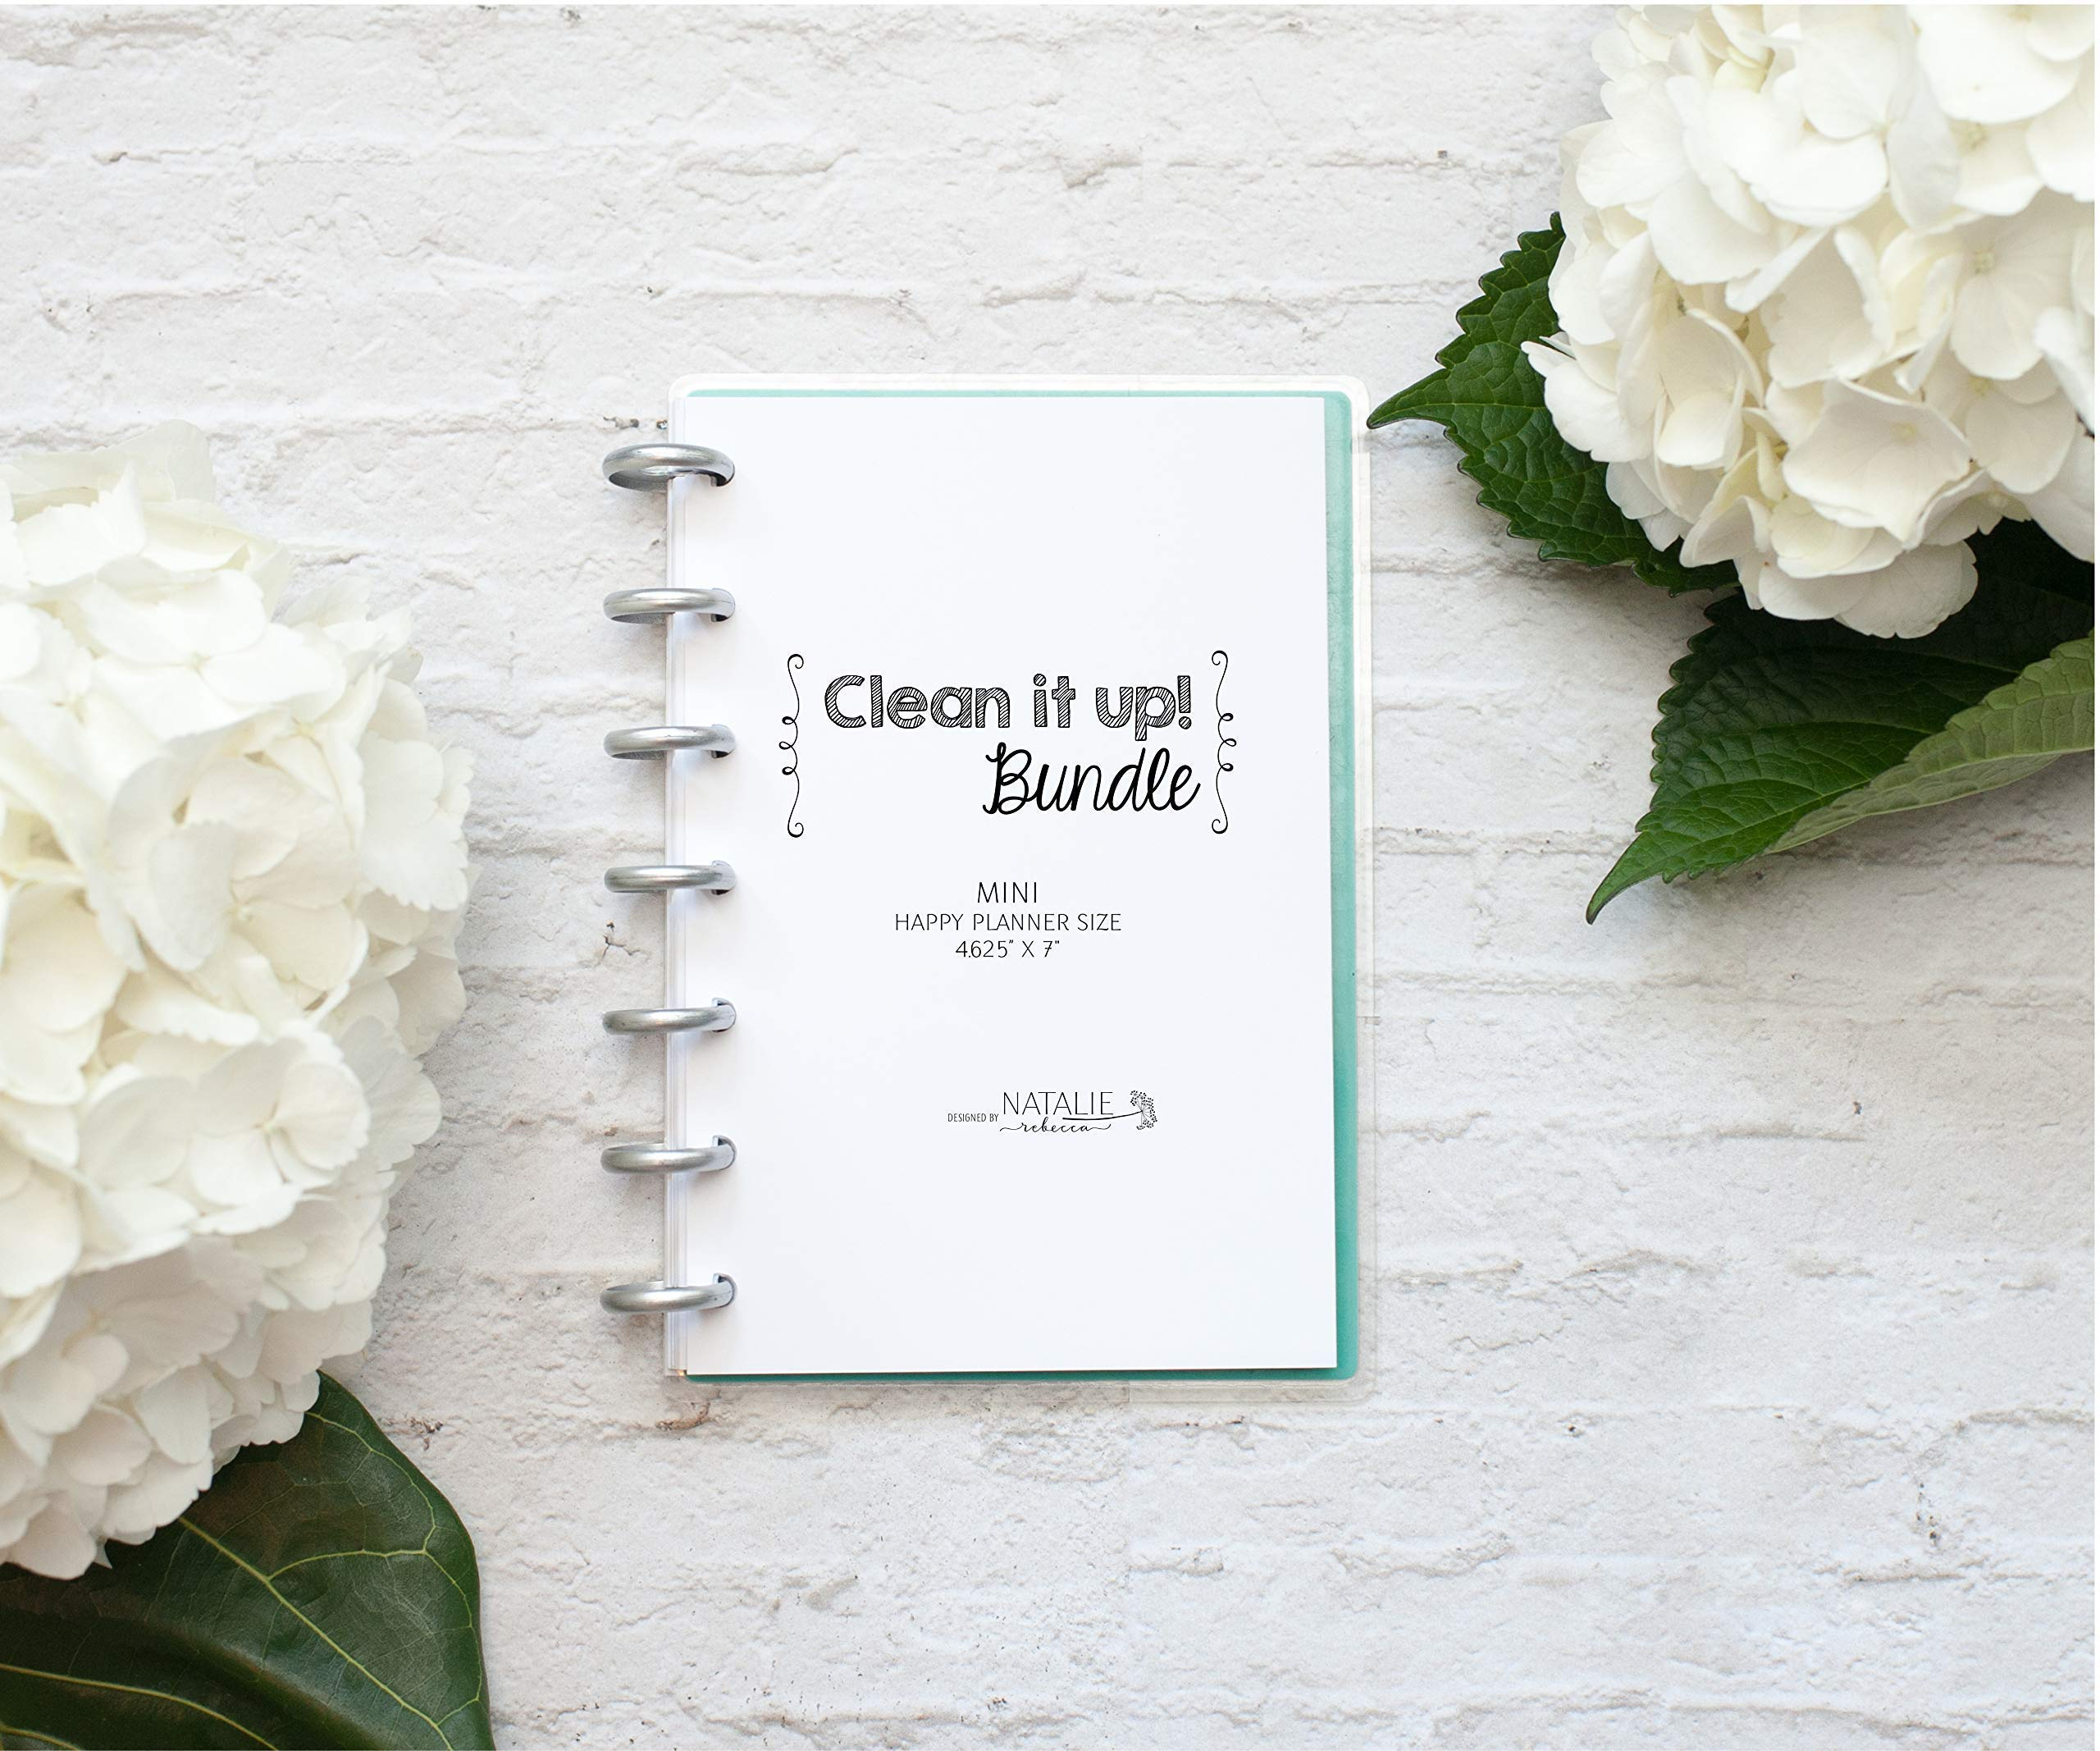 Cleaning Schedule for the Mini Happy Planner, Fits 7-Disc Notebook, Create 365 Planner Pages, 4.25''x7'' (Planner Not Included)